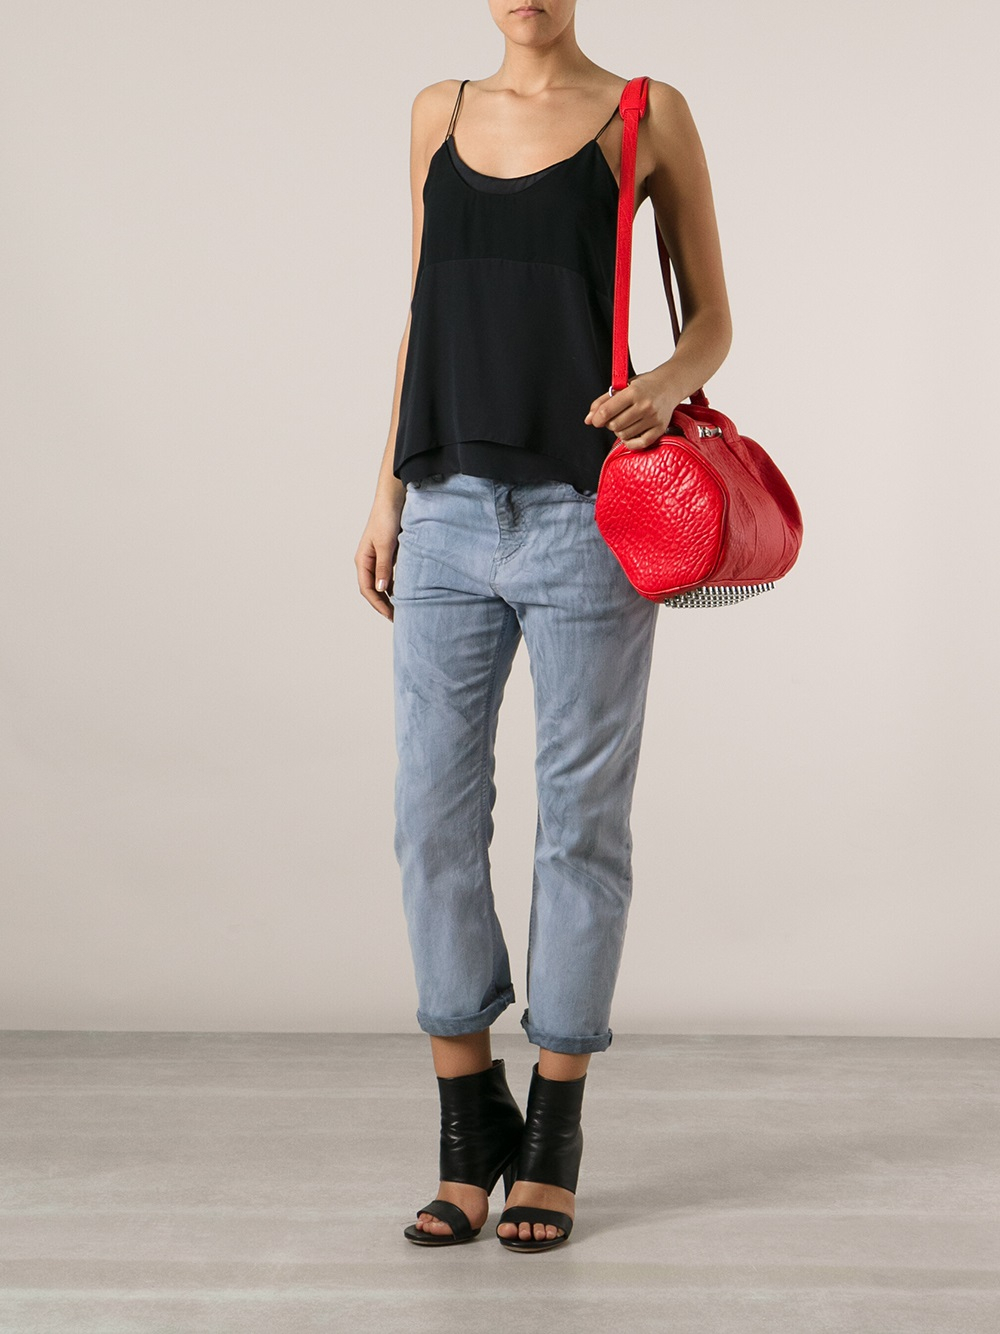 Alexander Wang Rockie Tote in Red